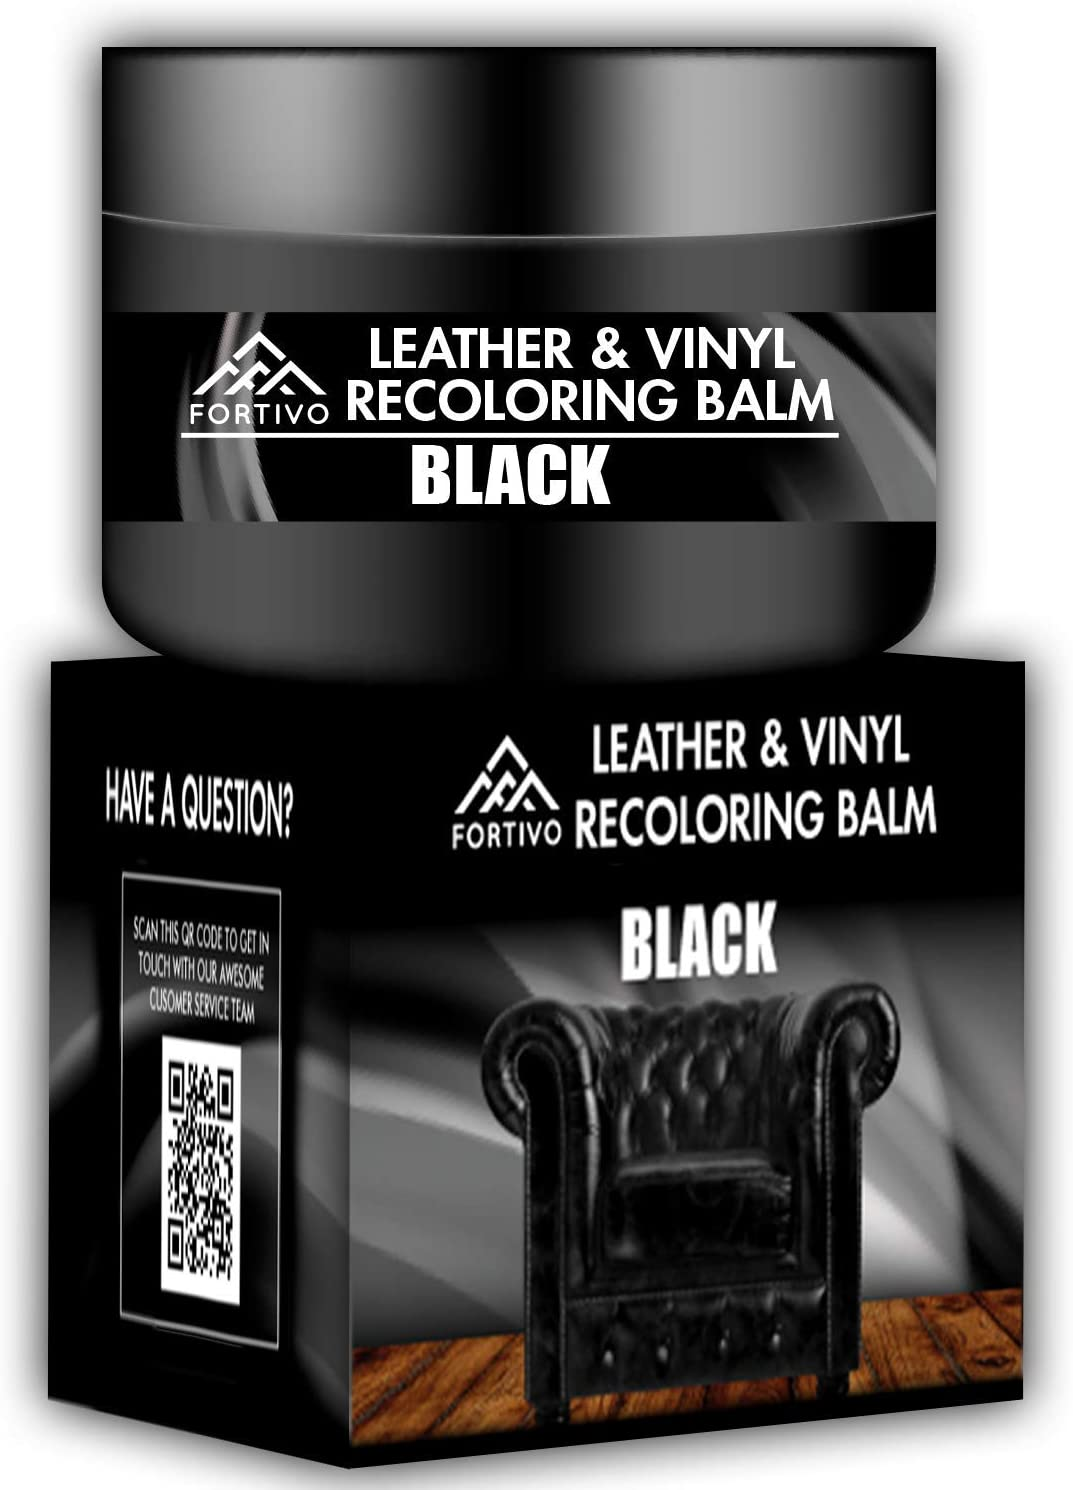 Black Leather Recoloring Balm - Leather Repair Kits for Couches - Leather Color Restorer for Furniture, Car Seats, Belt, Boots - Leather Repair Cream for Upholstery - Refurbishing Black Leather Dye